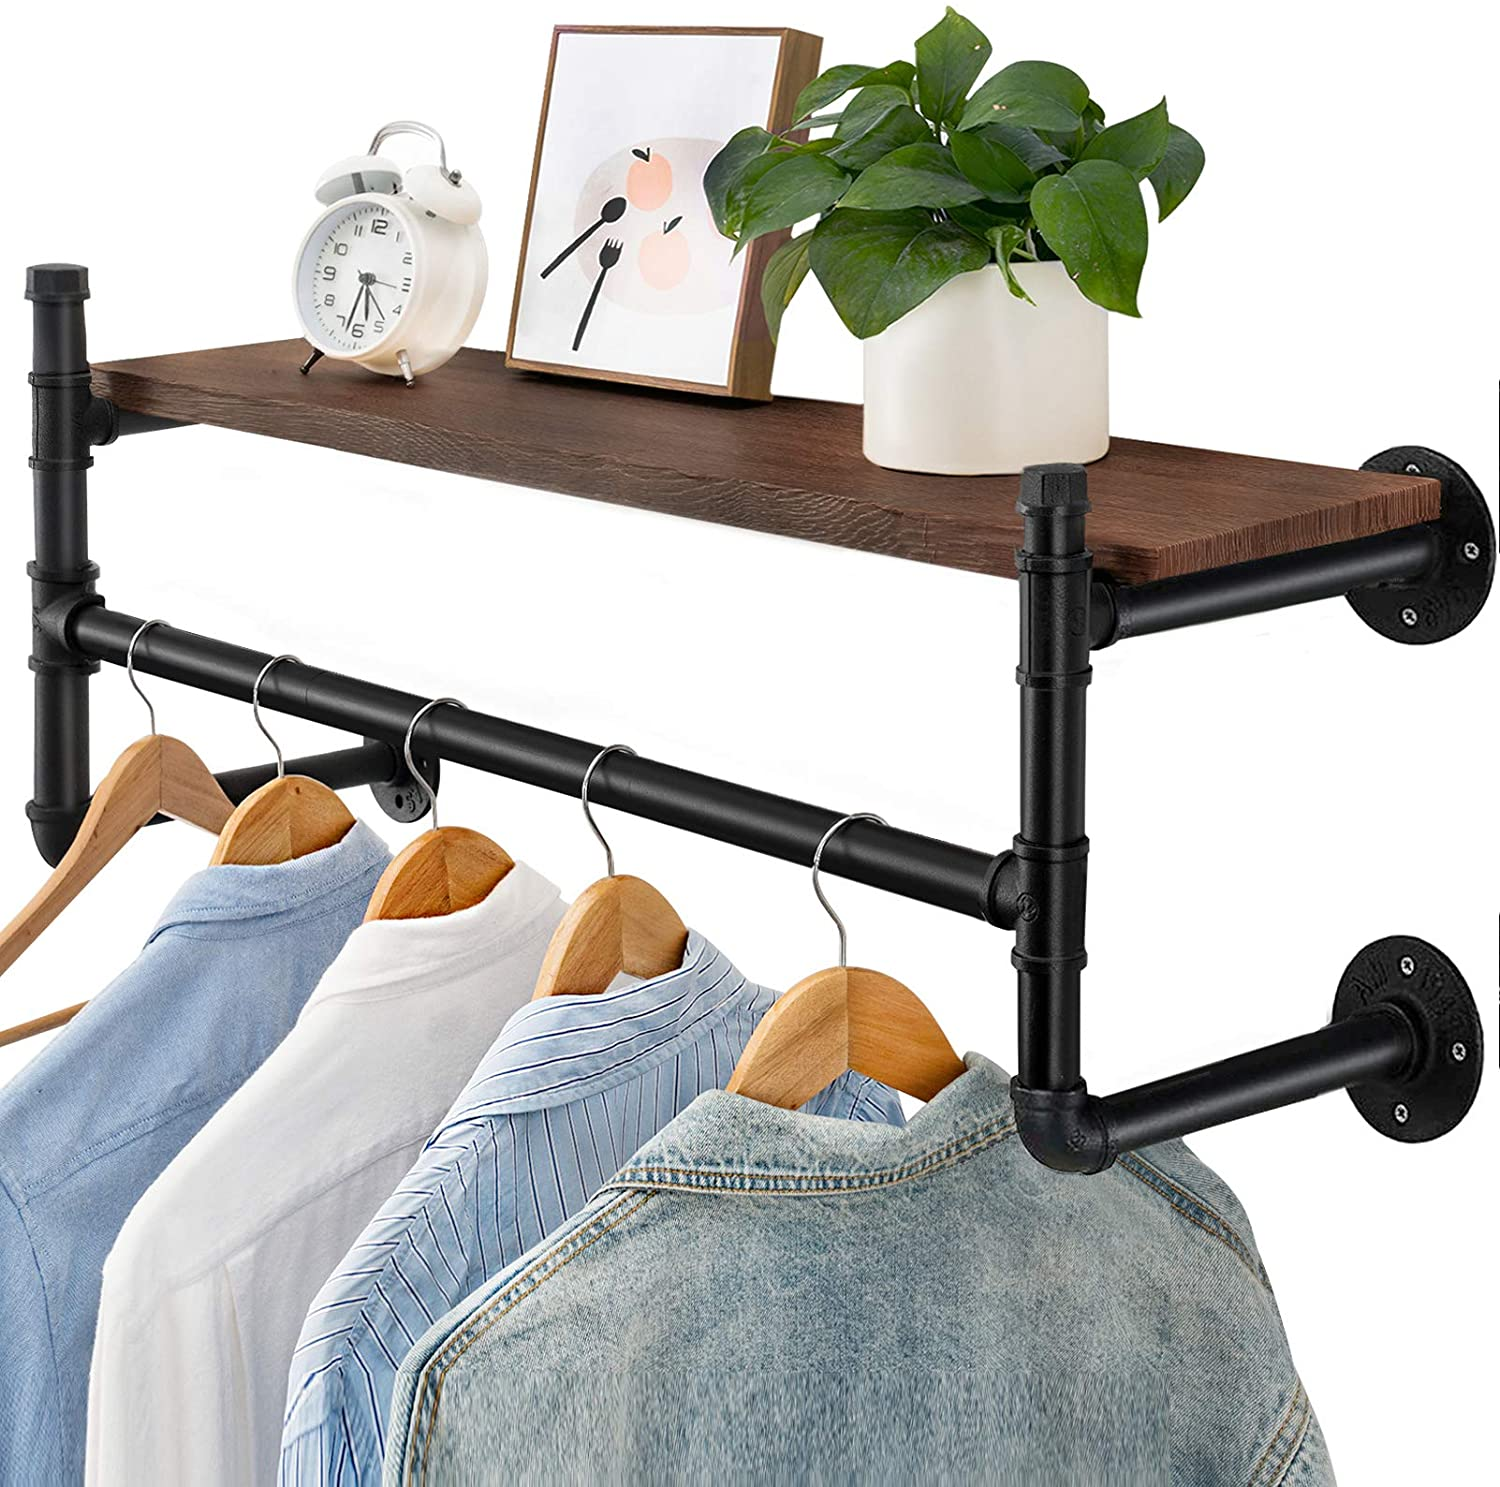 industrial pipe clothes rack heavy duty wall mounted black iron garment rack bar multi purpose hanging rod for closet storage laundry room 44